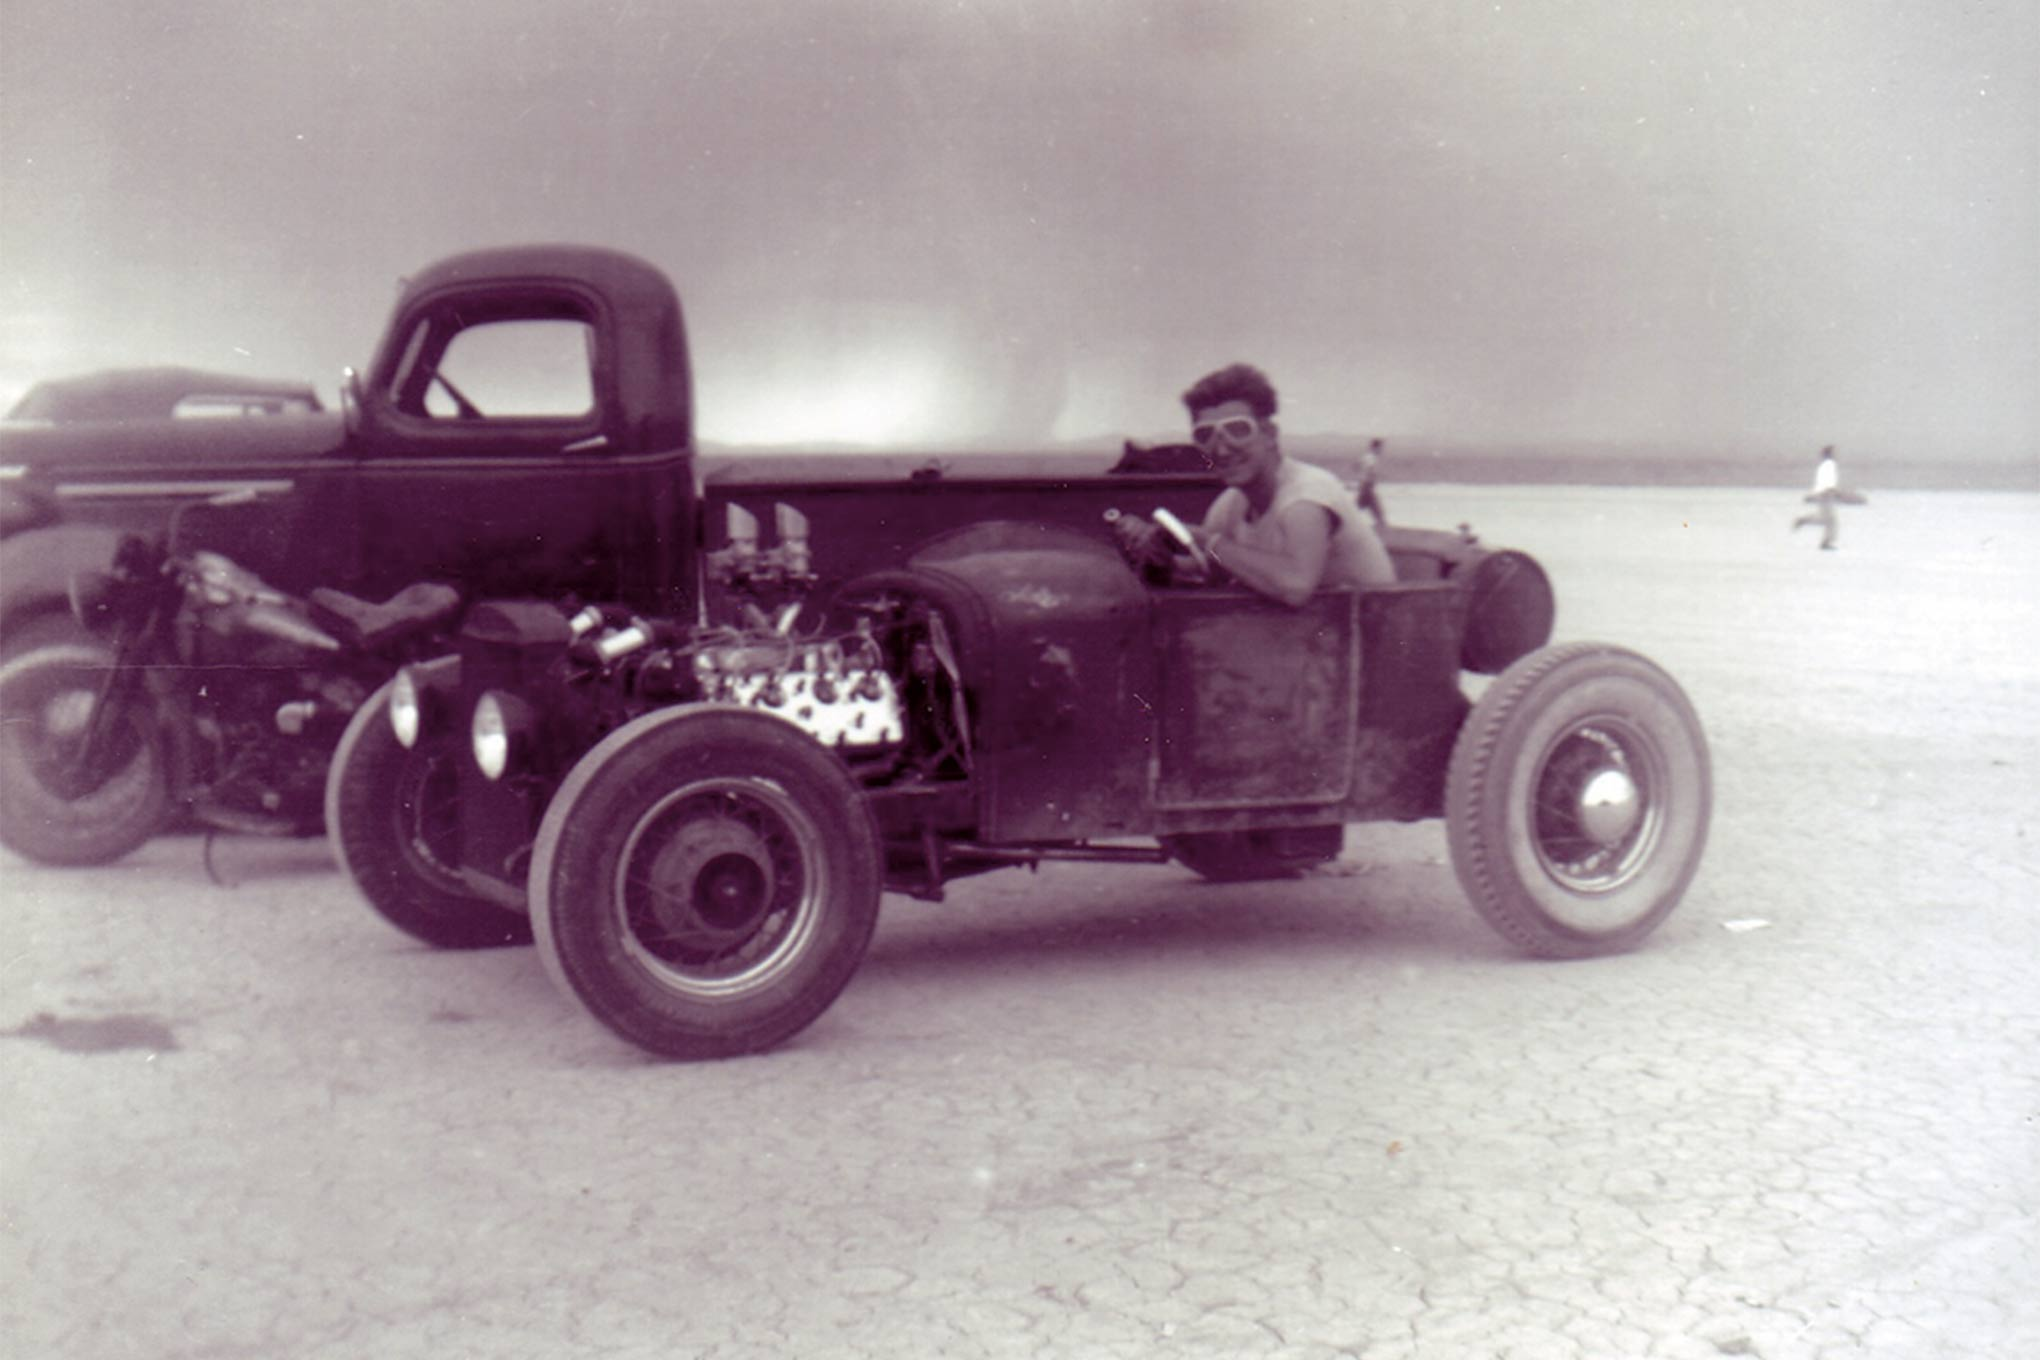 In his newly acquired roadster form Orr it was time to go to the dry lakes (note Dick wearing goggles!) These were both the early days of Dick's rodding career and the formative ones.